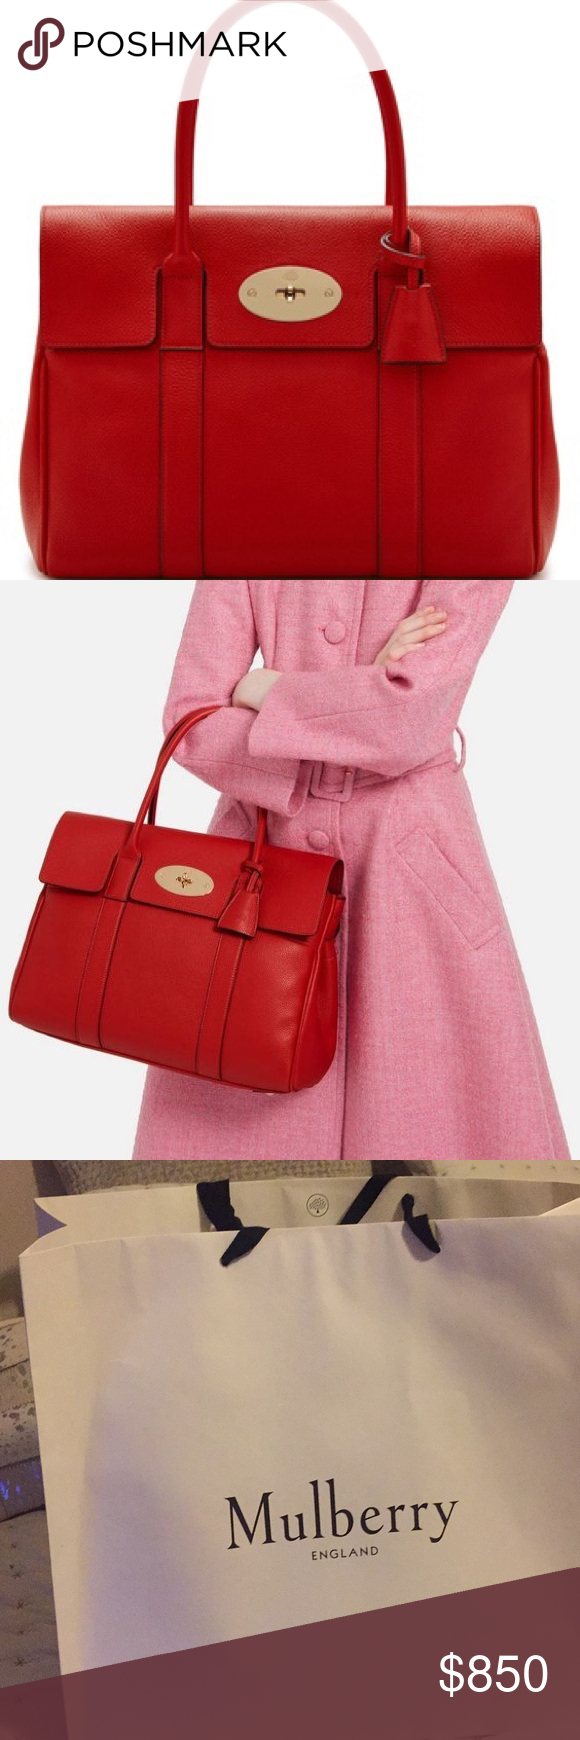 NEW Mulberry Heritage Bayswater Bag NEW with tags, dust bag and shopping bag Mulberry Bags Shoulder Bags #mulberrybag NEW Mulberry Heritage Bayswater Bag NEW with tags, dust bag and shopping bag Mulberry Bags Shoulder Bags #mulberrybag